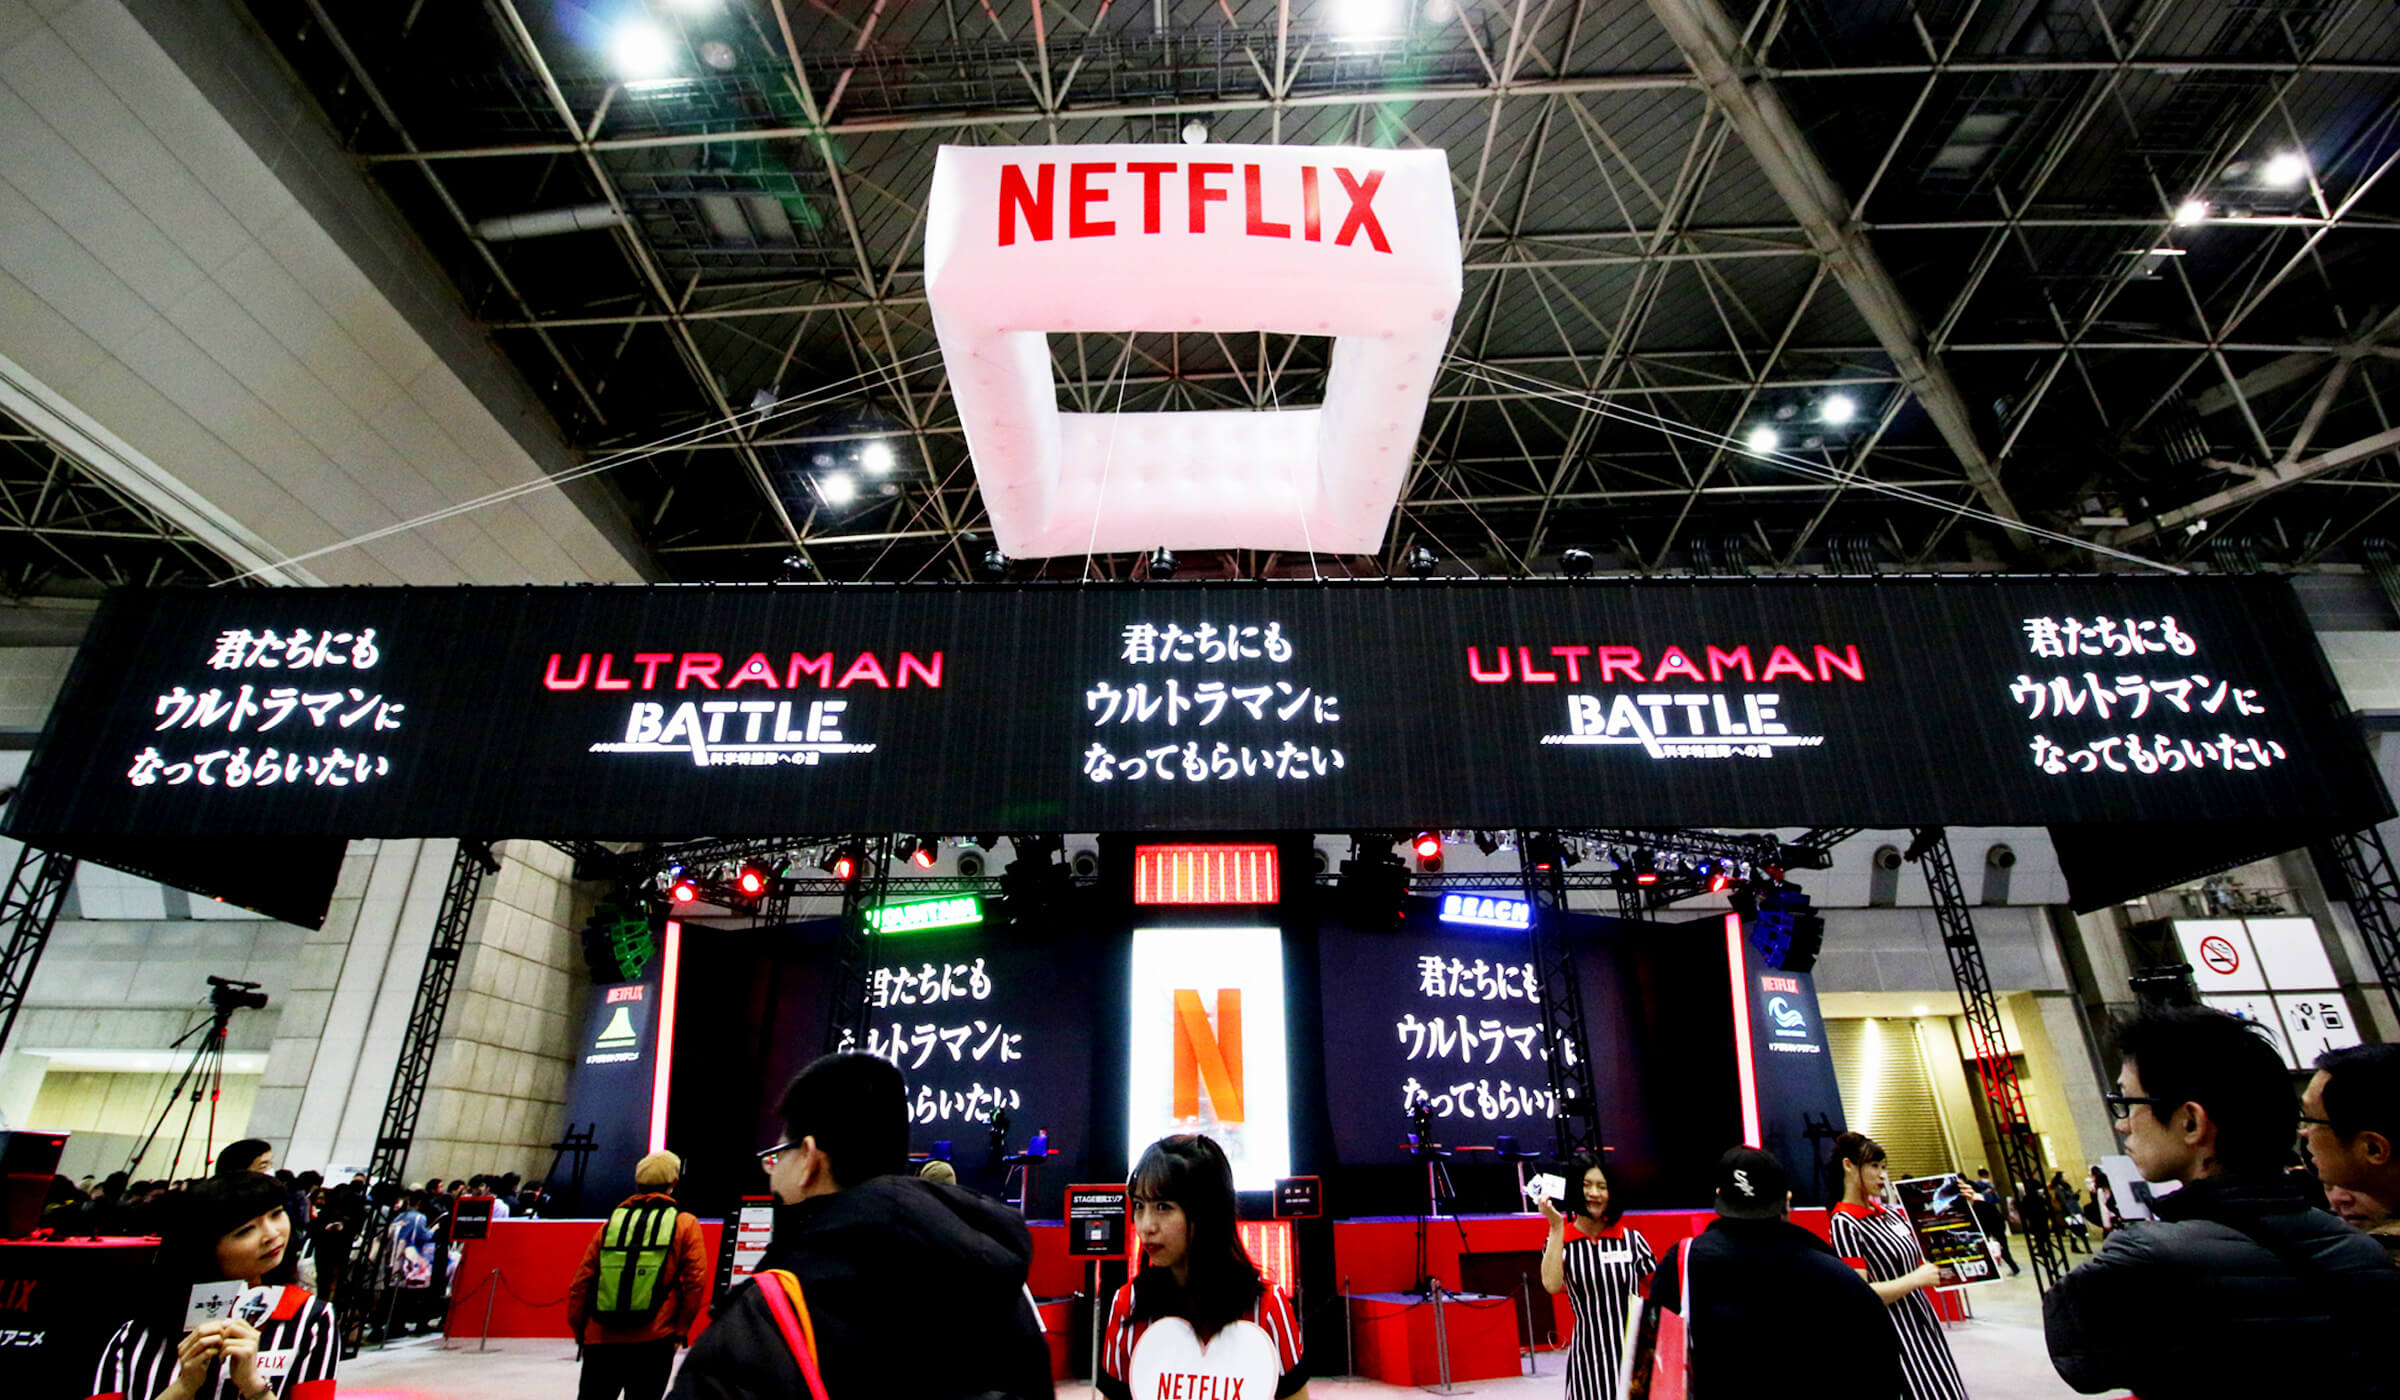 NETFLIX -ULTRAMAN BATTLE-